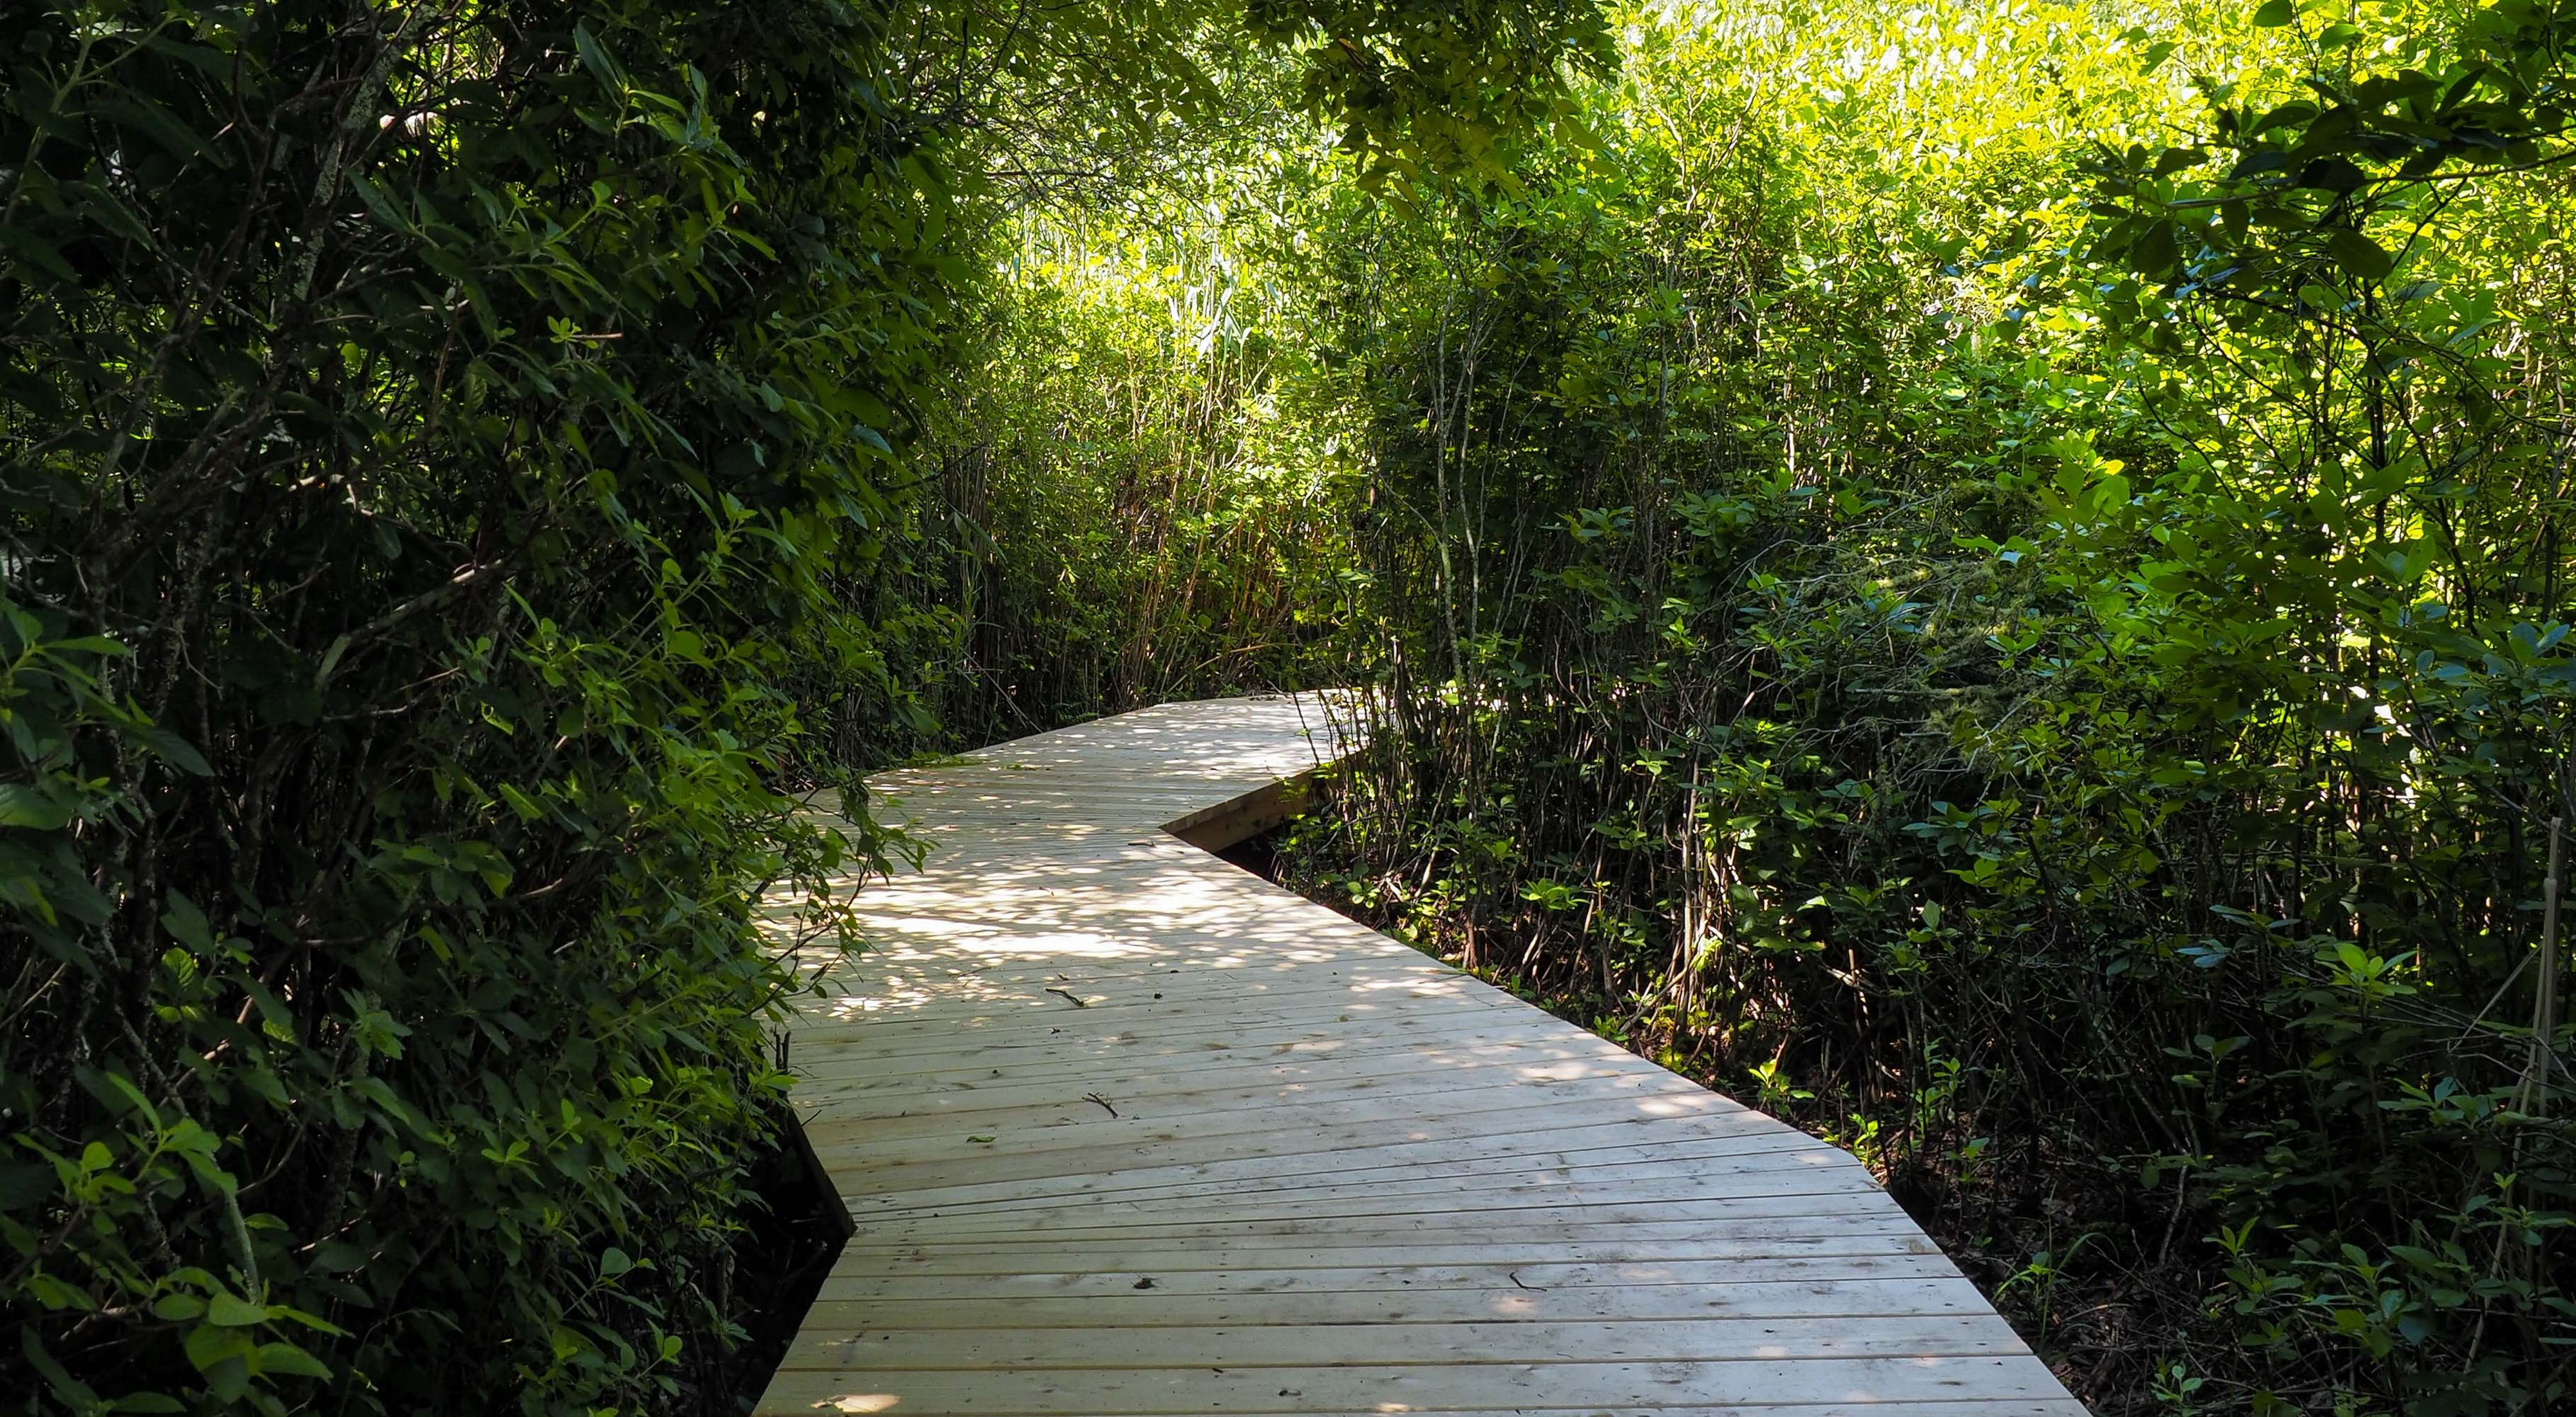 Take a walk on the boardwalk at our Sagg Swamp Preserve on Long Island